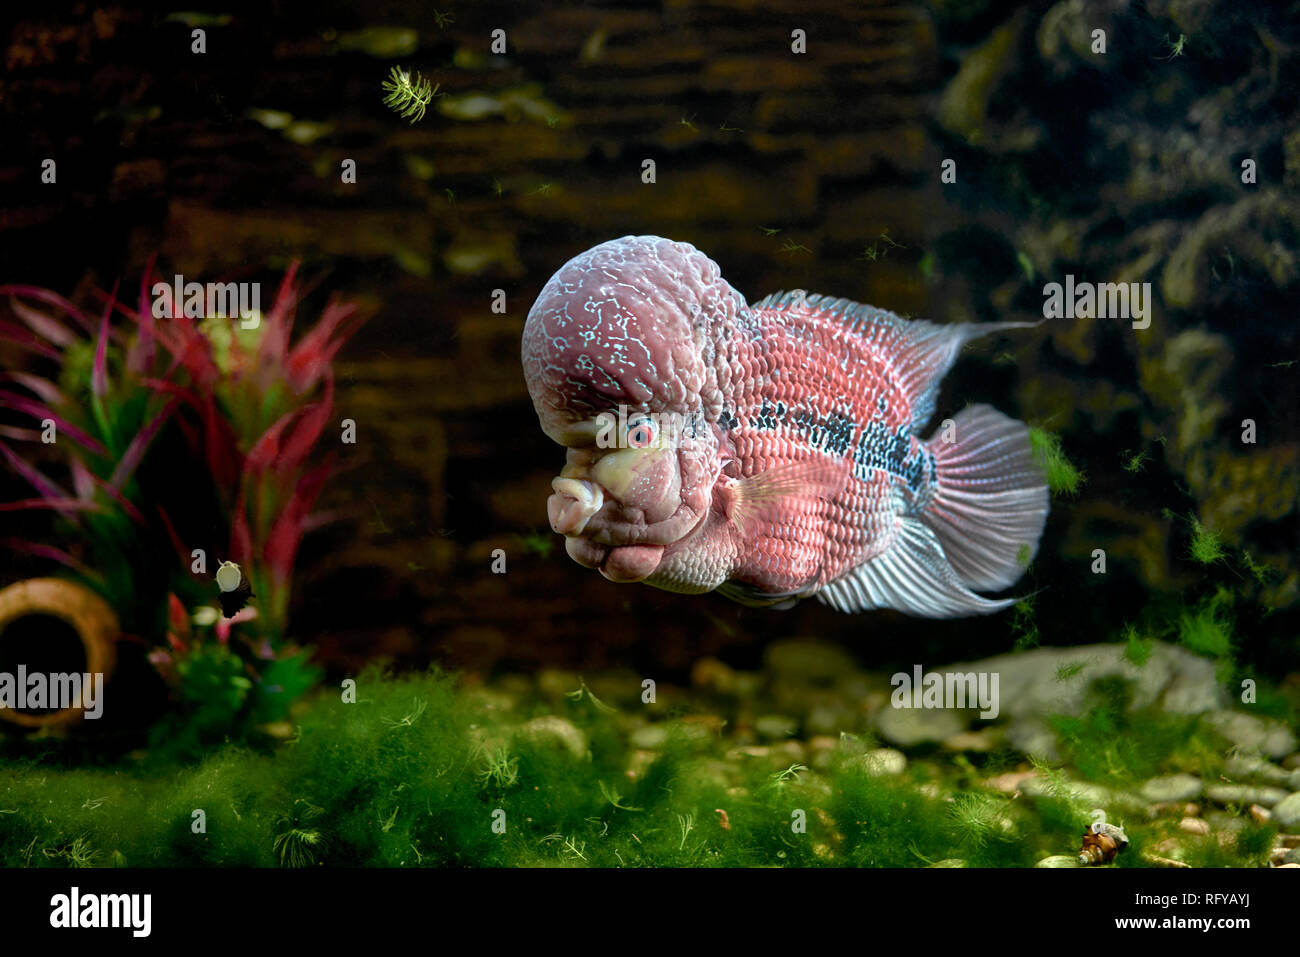 Flowerhorn Stock Photos & Flowerhorn Stock Images - Alamy